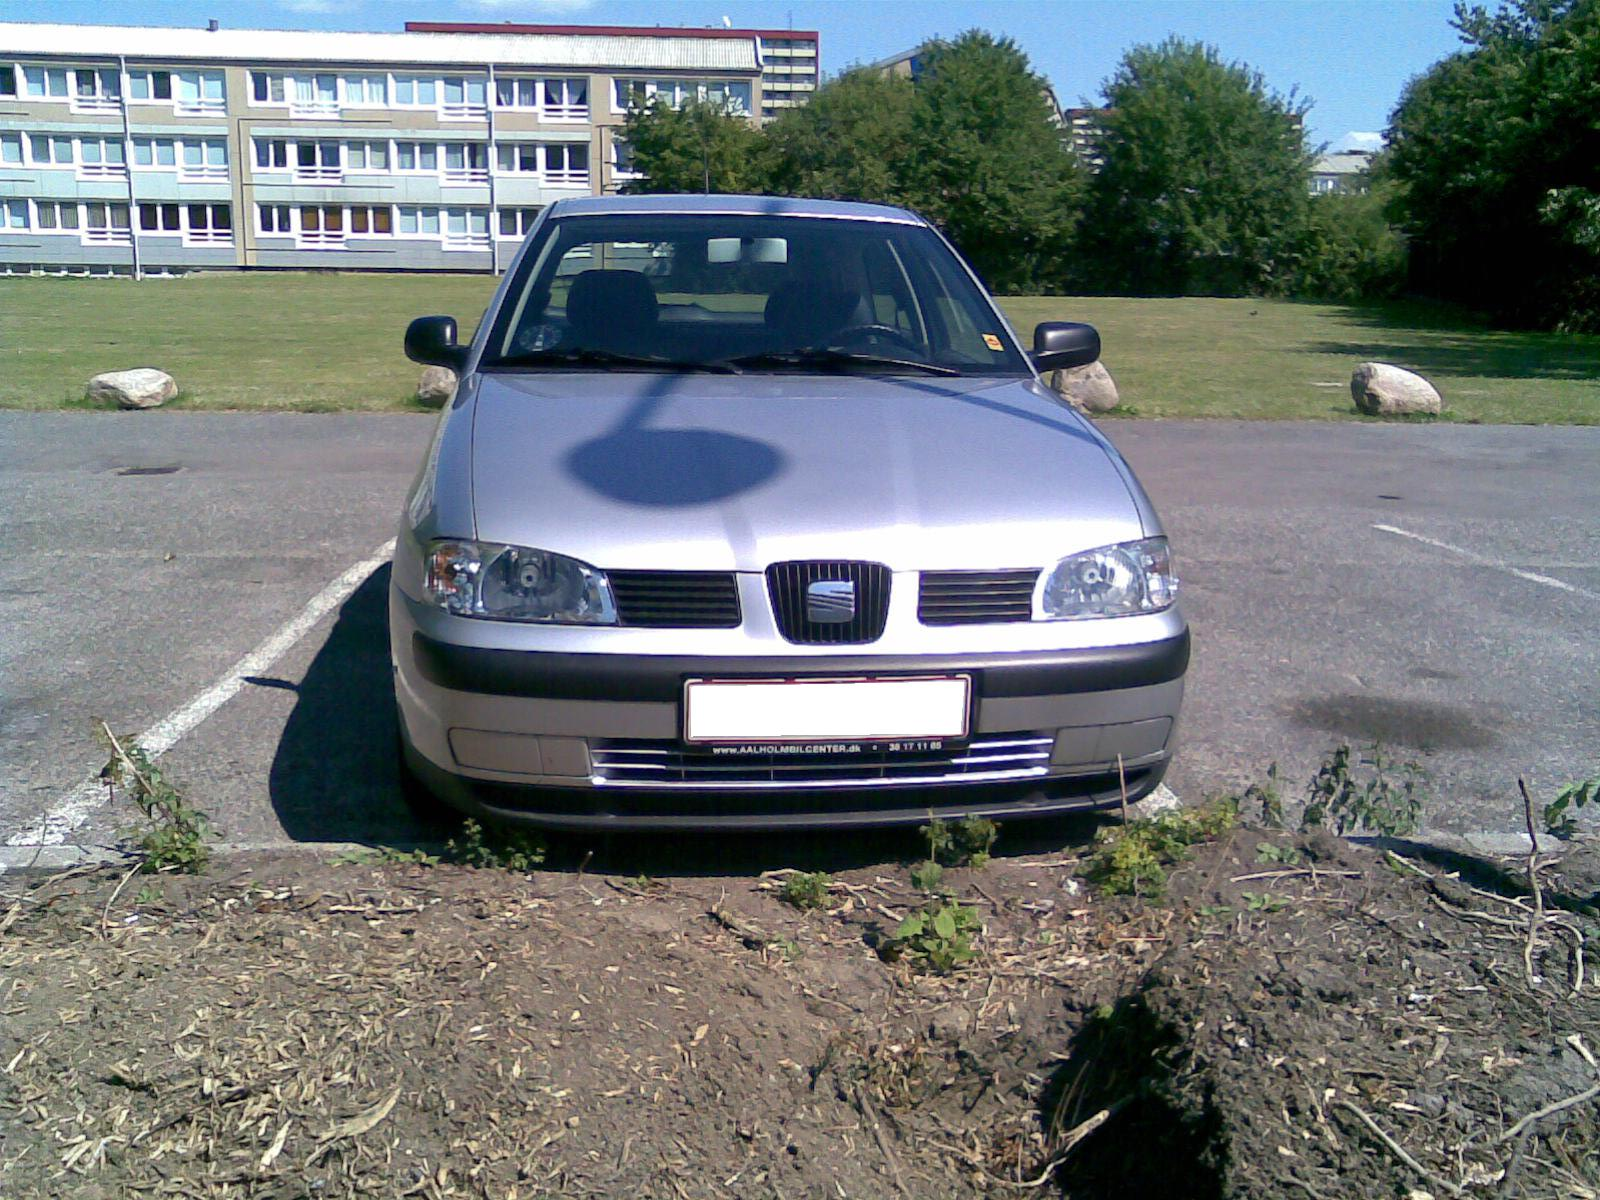 Seat Toledo Pic likewise Seat Ibiza Pic moreover Seat Ibiza Pic additionally Seat Cordoba Pic Tmb also Ford Fiesta Pic X. on 1997 seat ibiza pictures cargurus